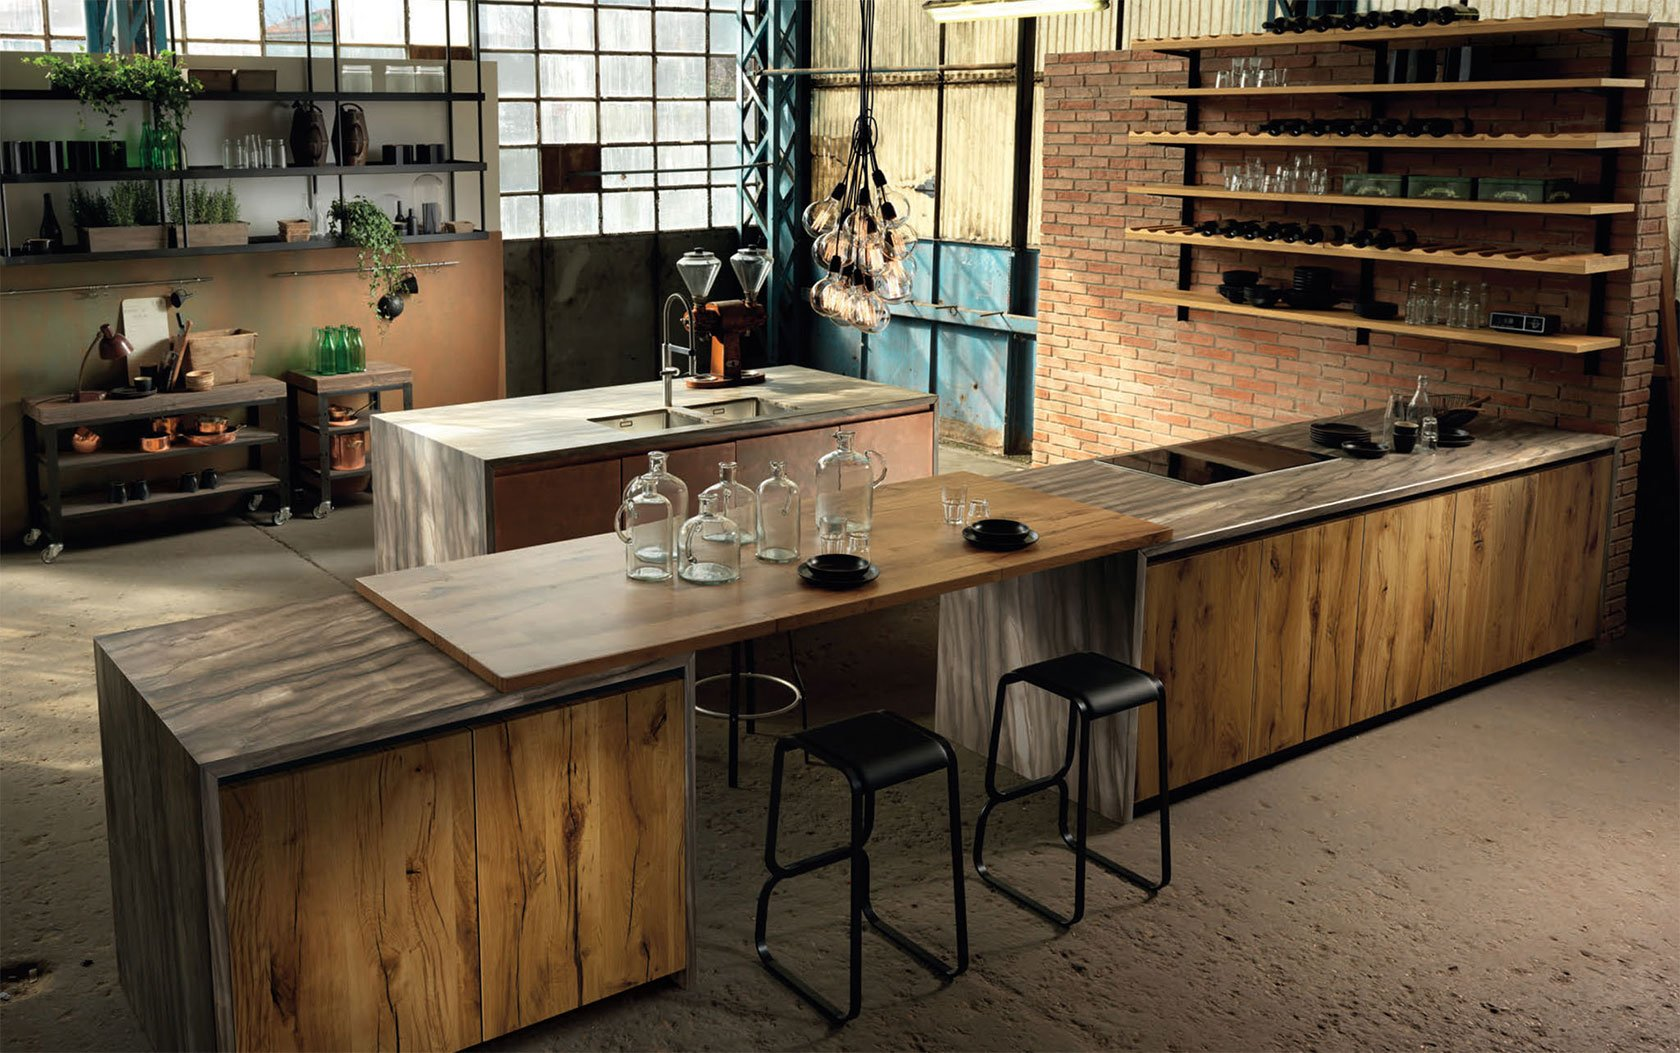 Modern Kitchens Without Handles - Four Seasons Fitted ...